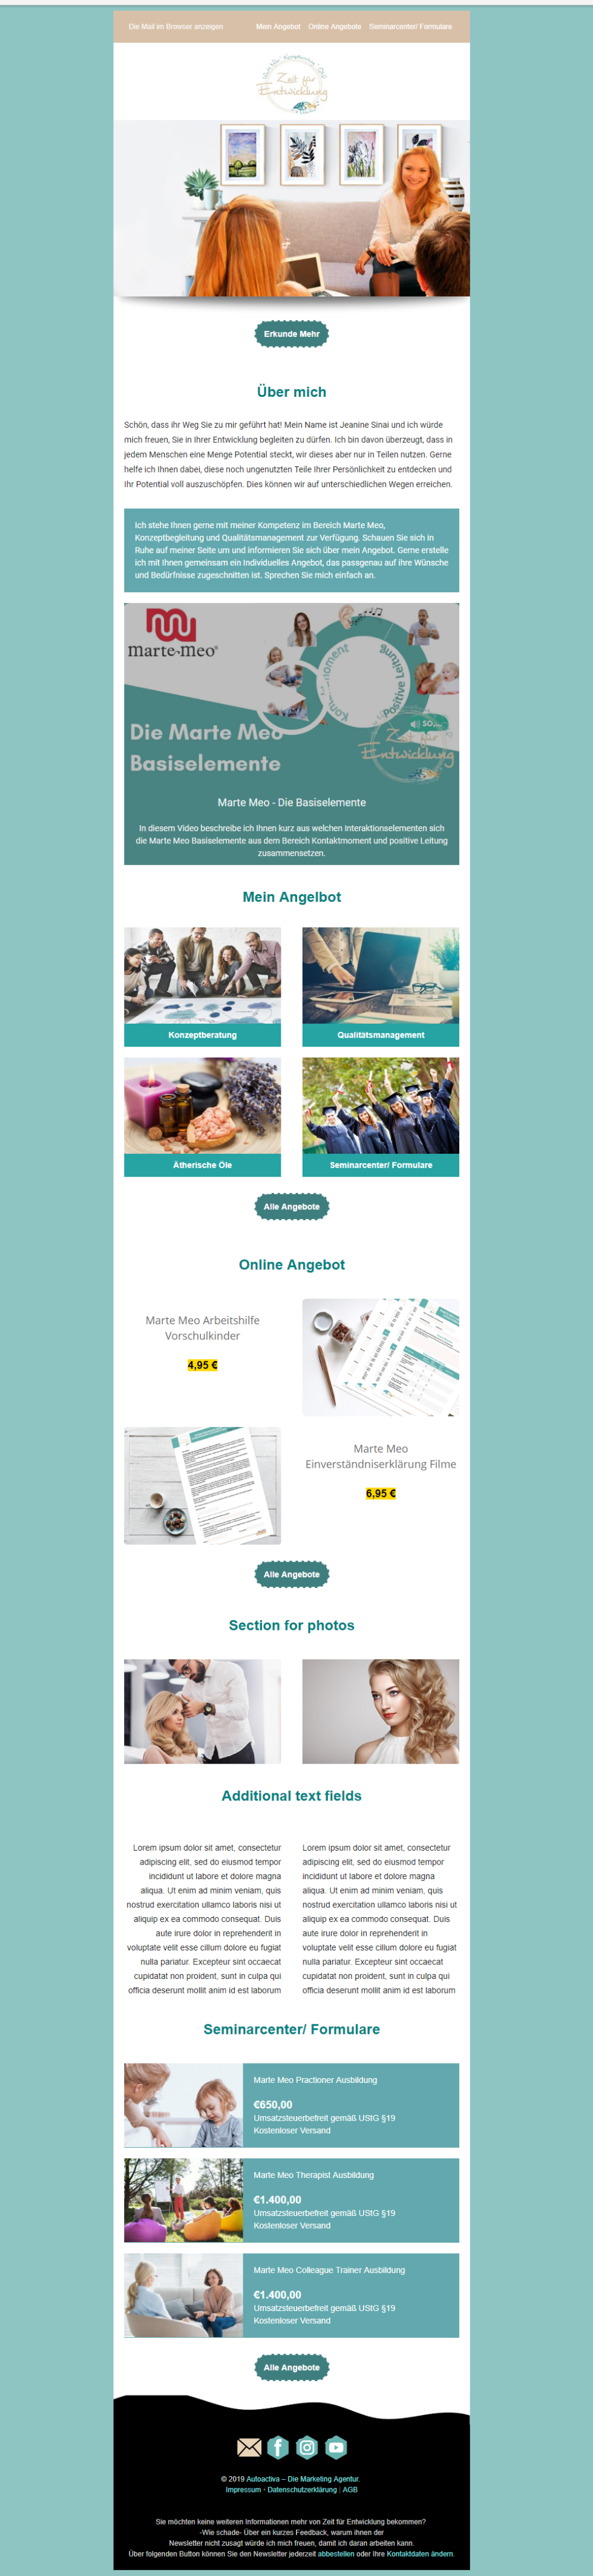 Email newsletter template in German. Colors include mint green, turquoise, white, green. Template includes block of text, images, graphic design, branding.